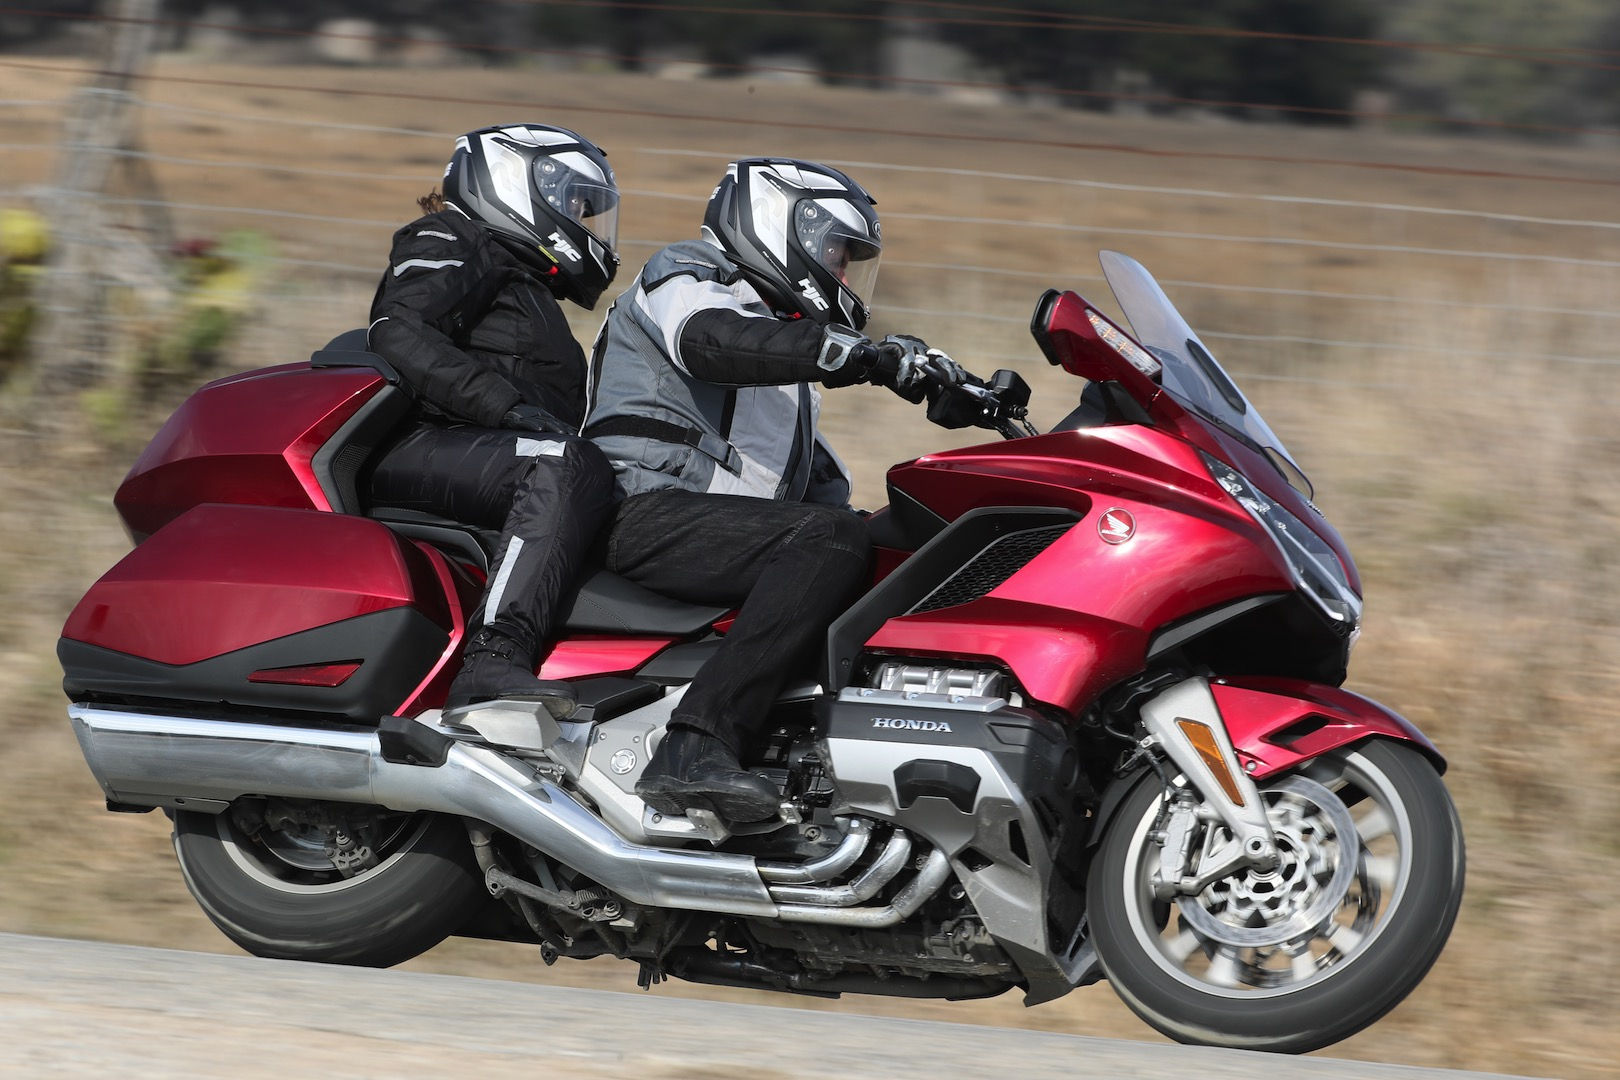 2018 Honda Gold Wing's upgrades takes everything up a notch